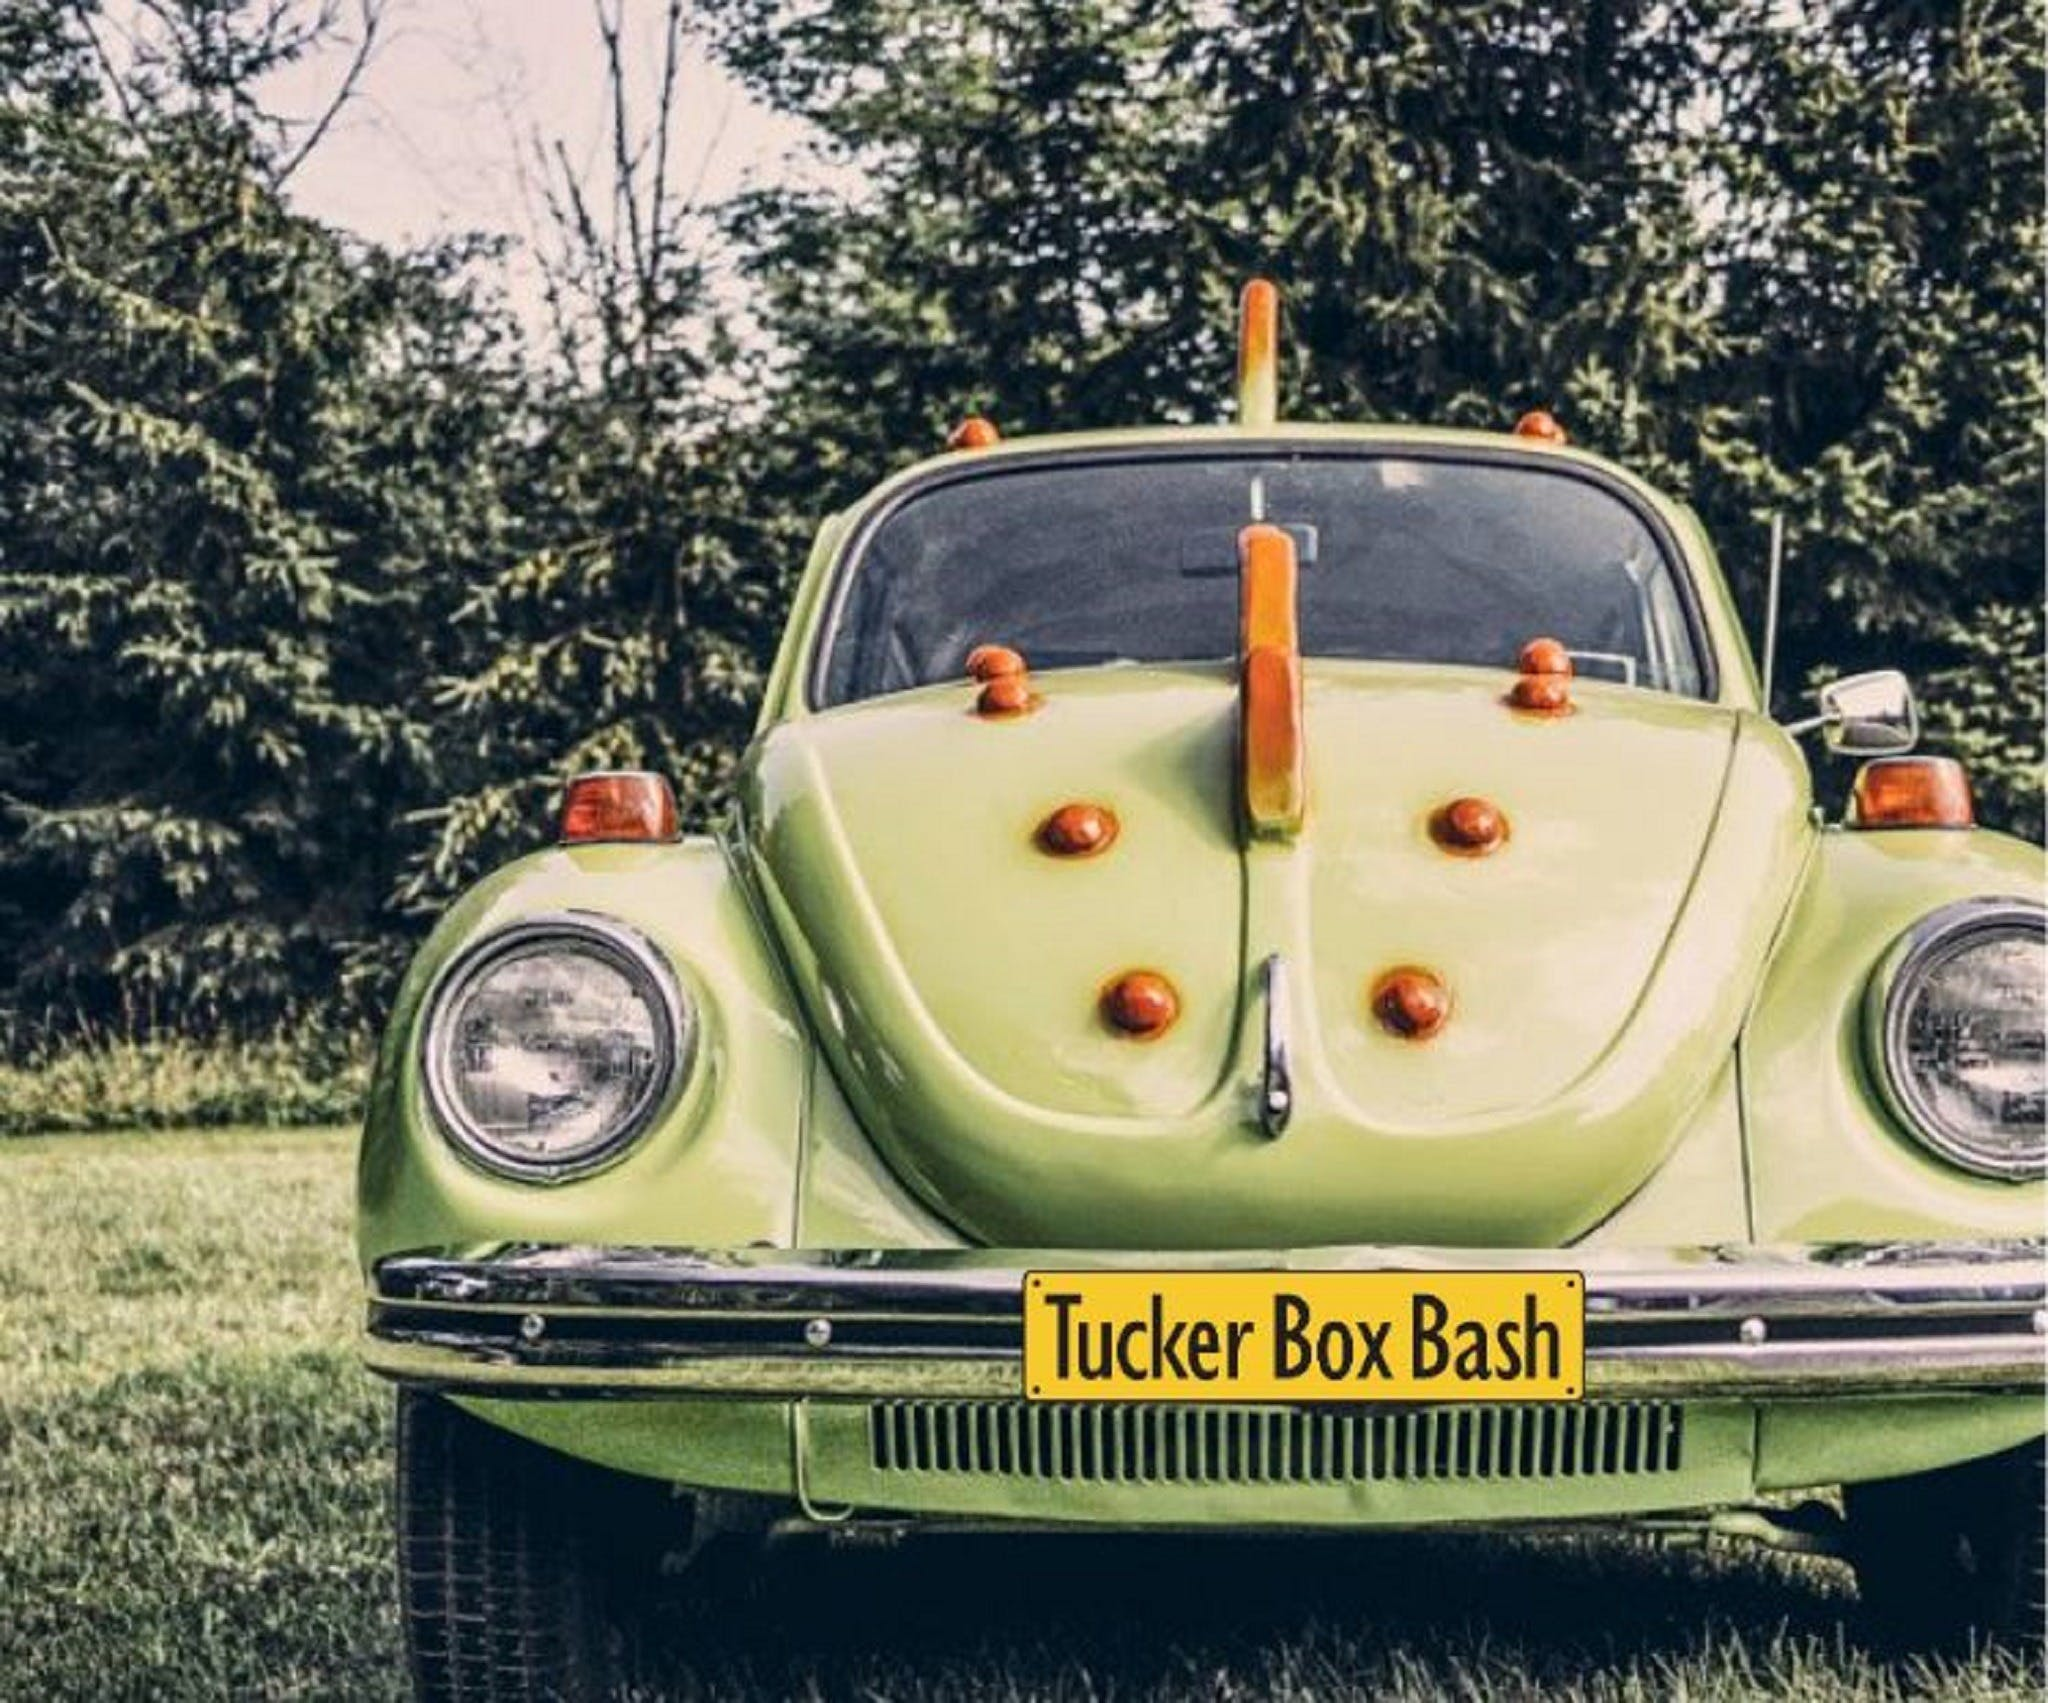 Tucker Box Bash - Tourism Canberra